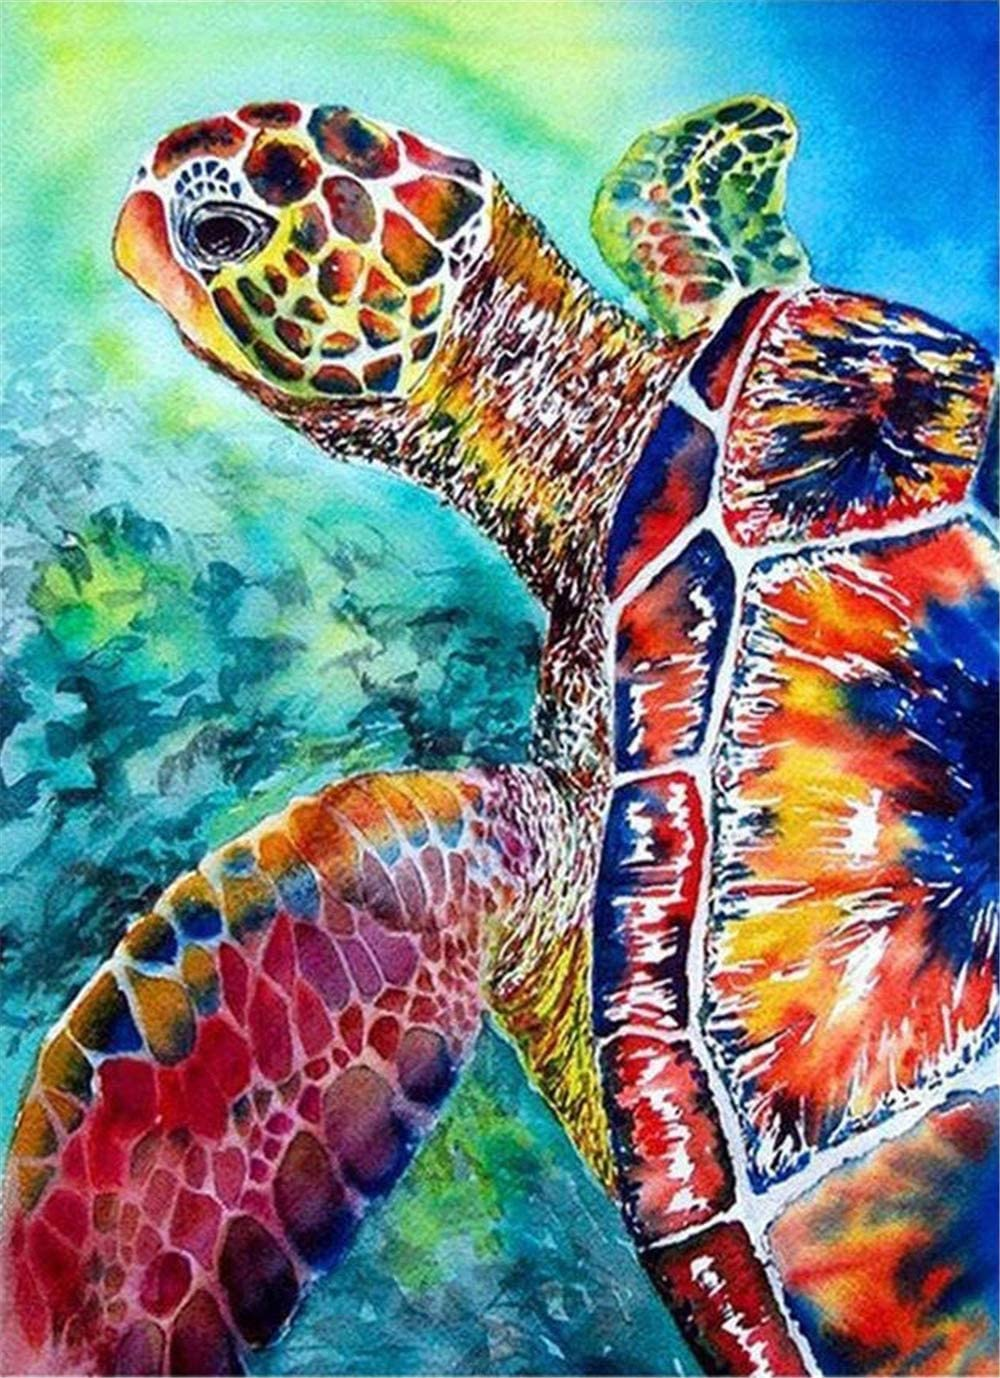 Paint-by-Number Kits for Adults Discount mail order Popular popular - Sea Turtle Colorful Includes